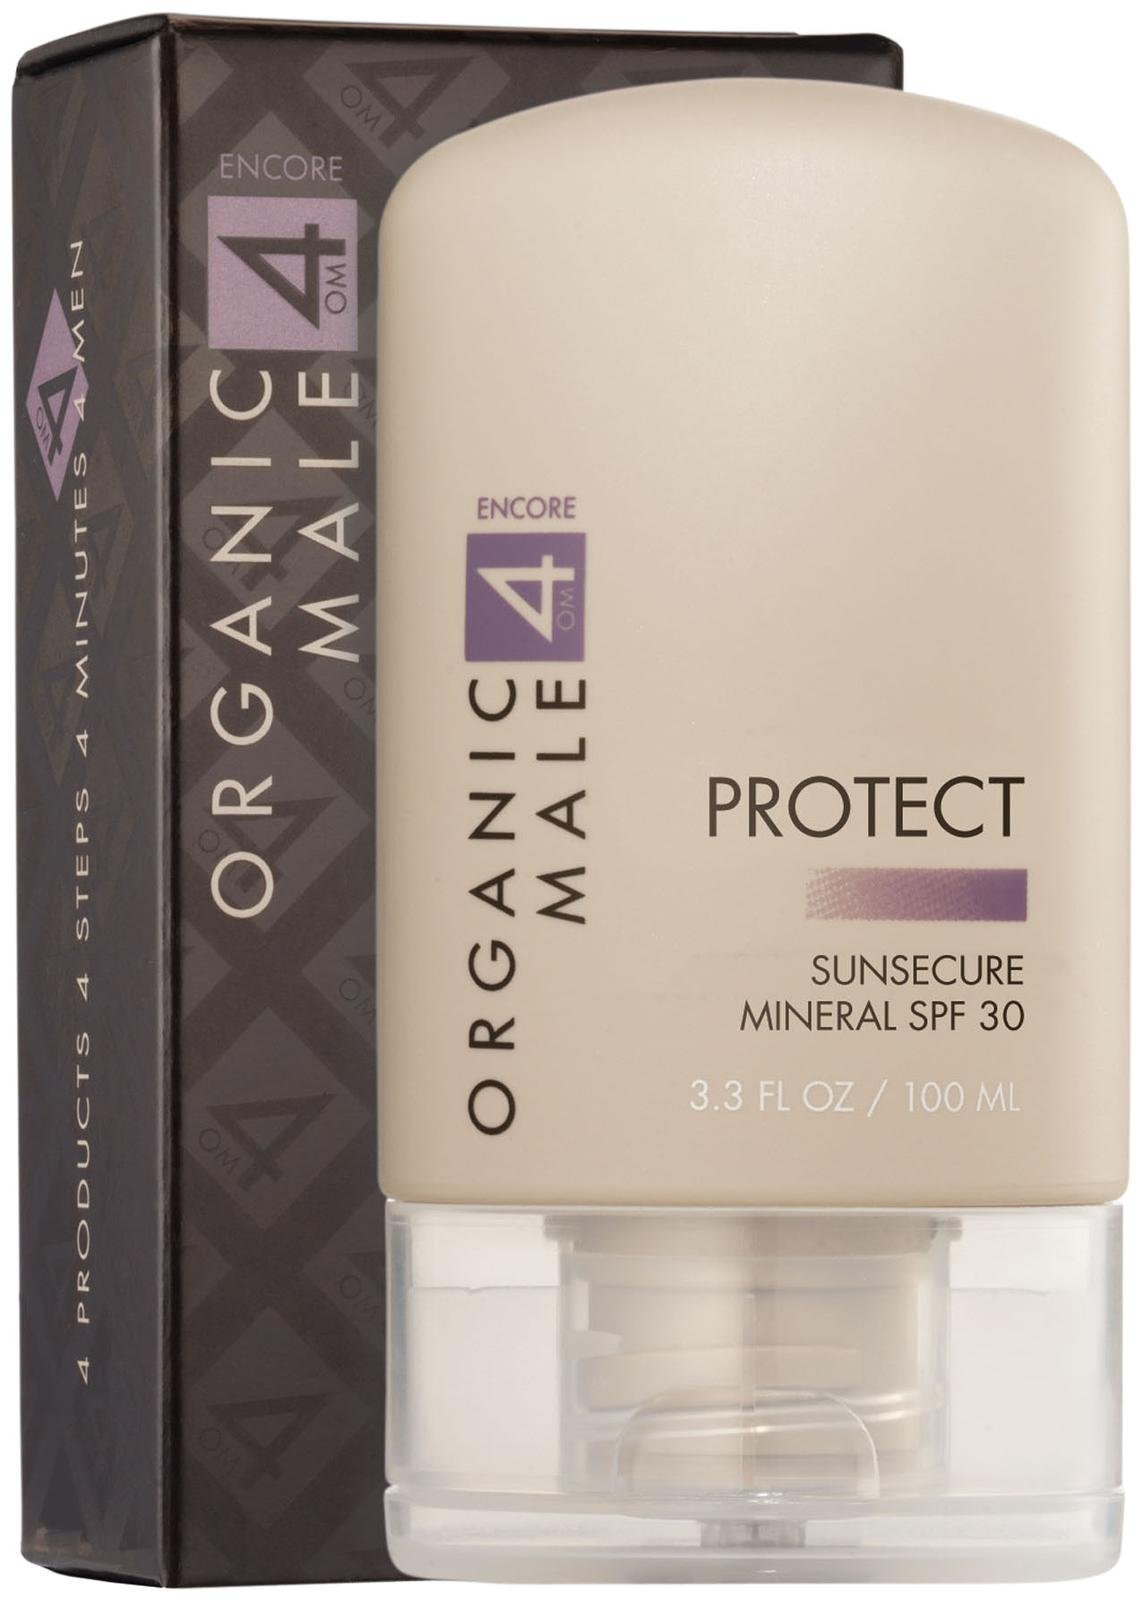 Organic Male OM4 Encore PROTECT: SunSecure Mineral SPF 30 - 3.3 oz